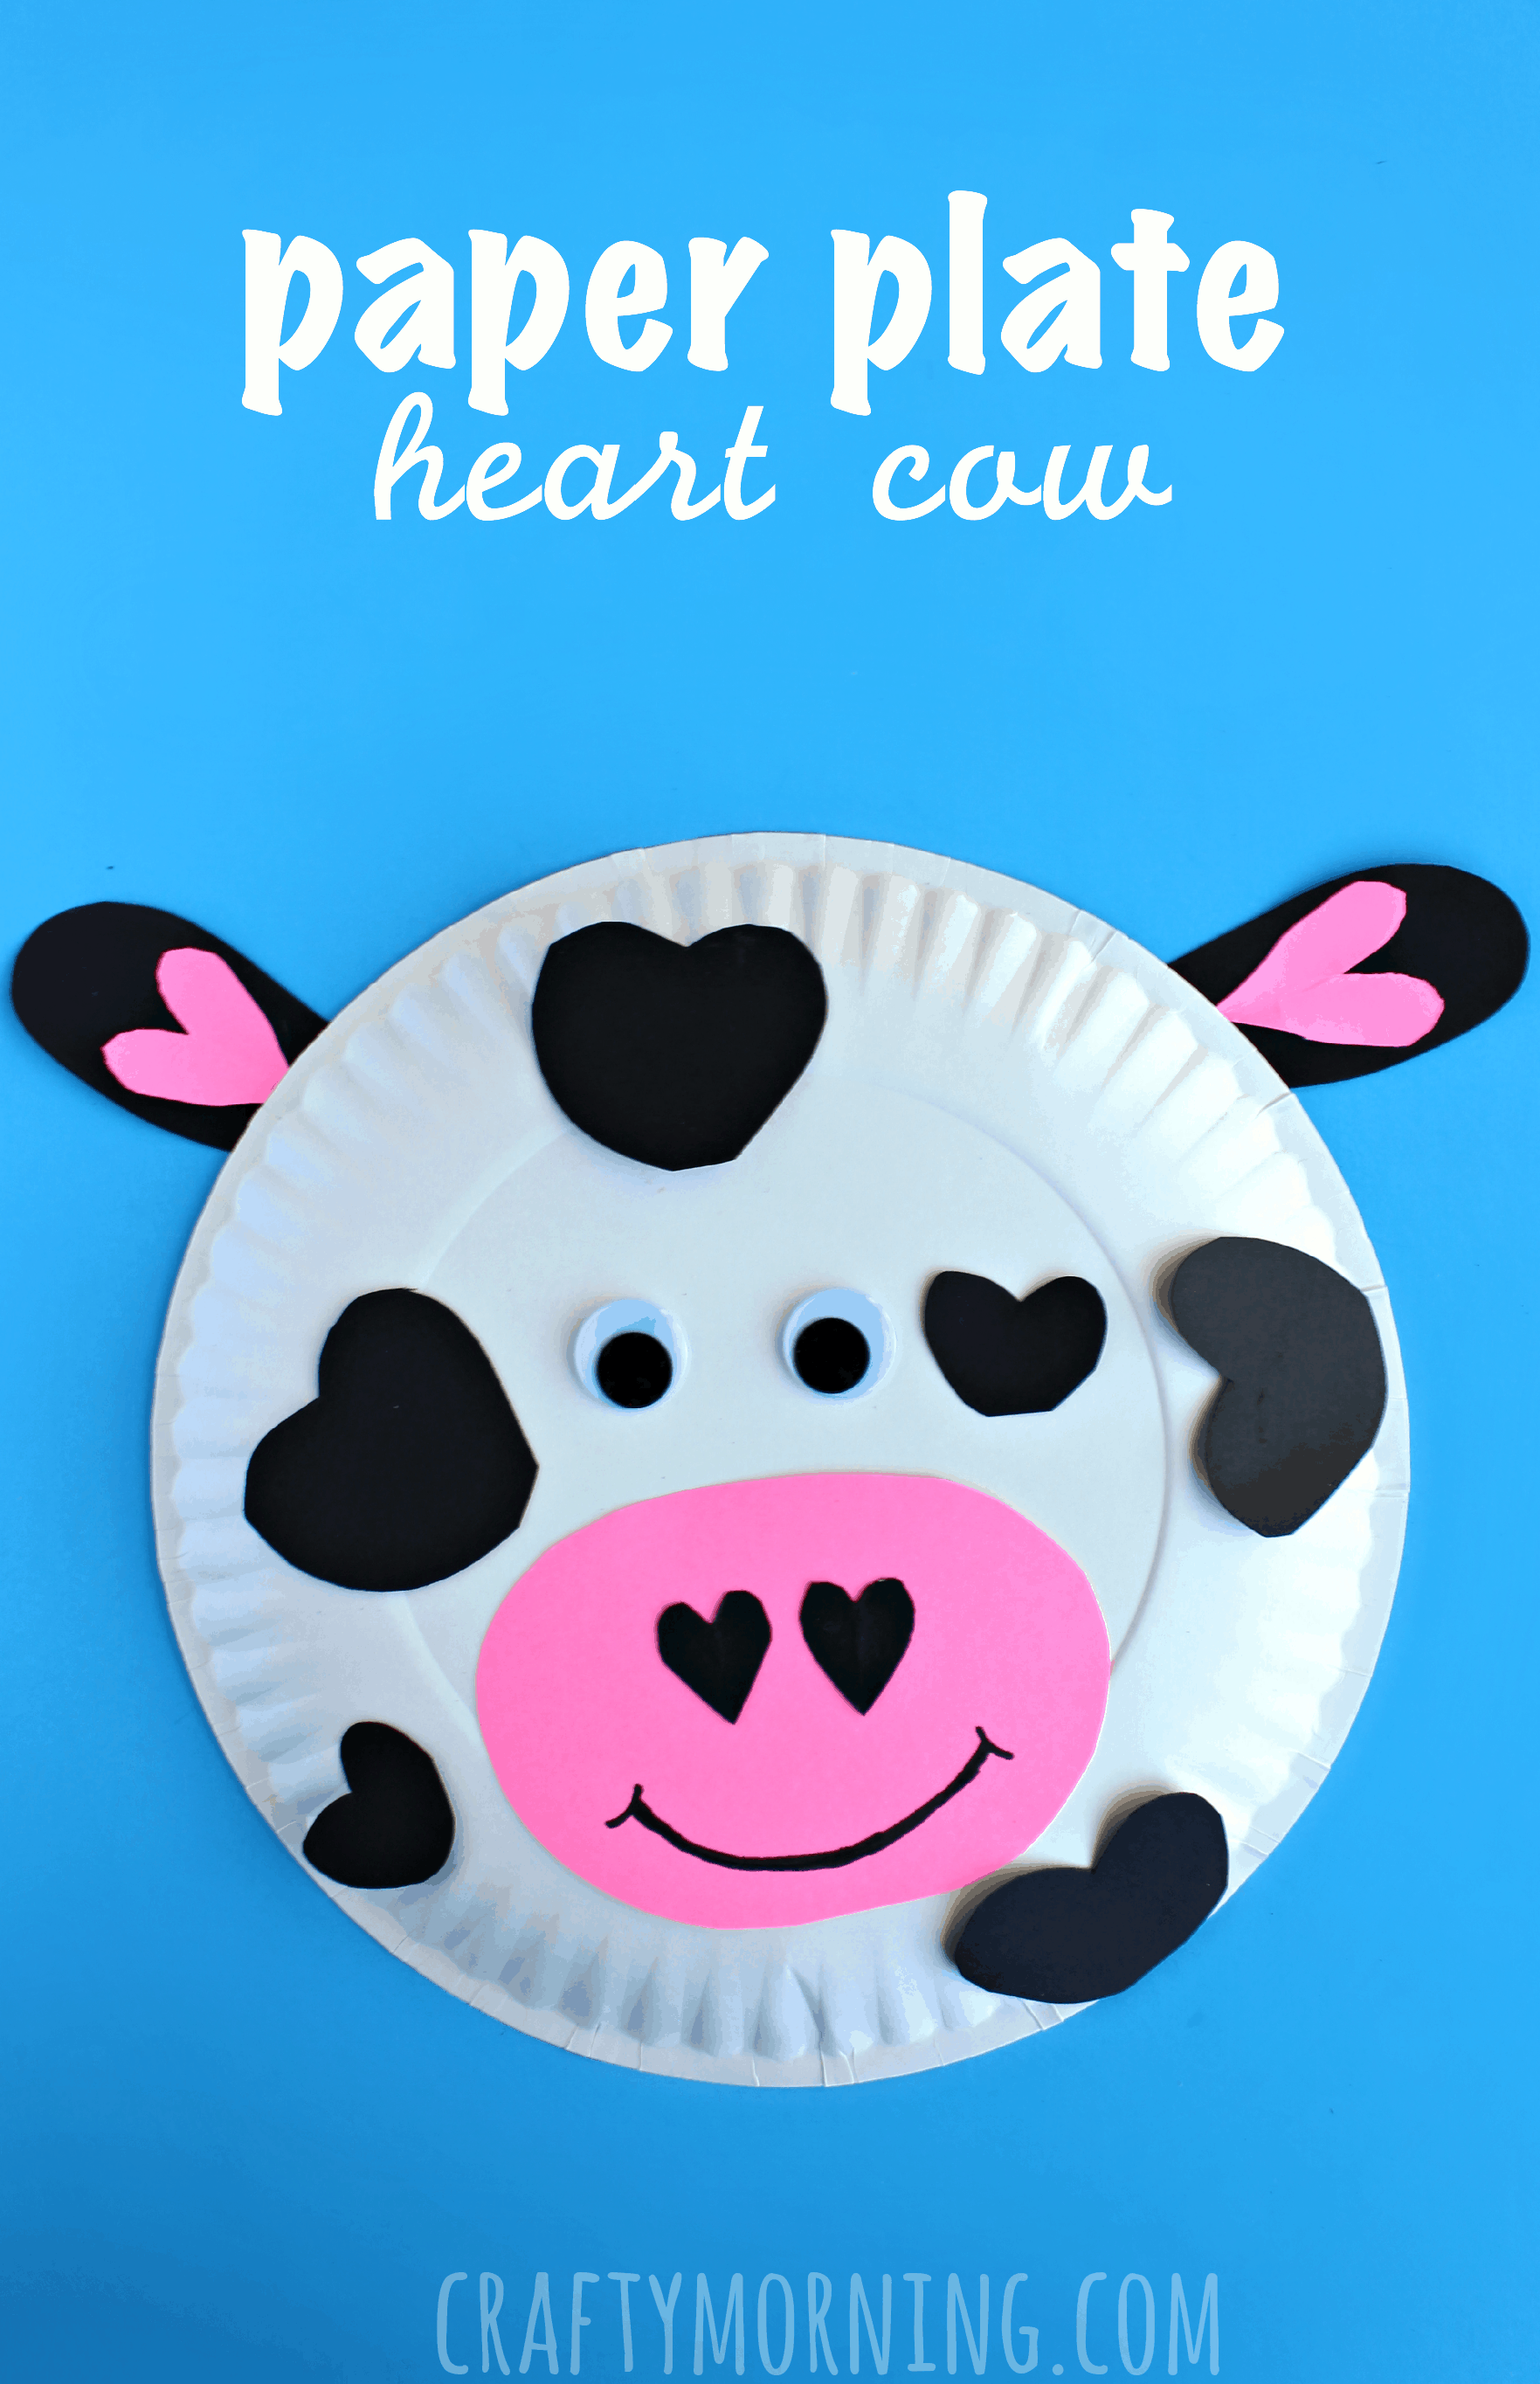 15 fantastic cow themed diy projects 1 paper plate heart cow solutioingenieria Gallery